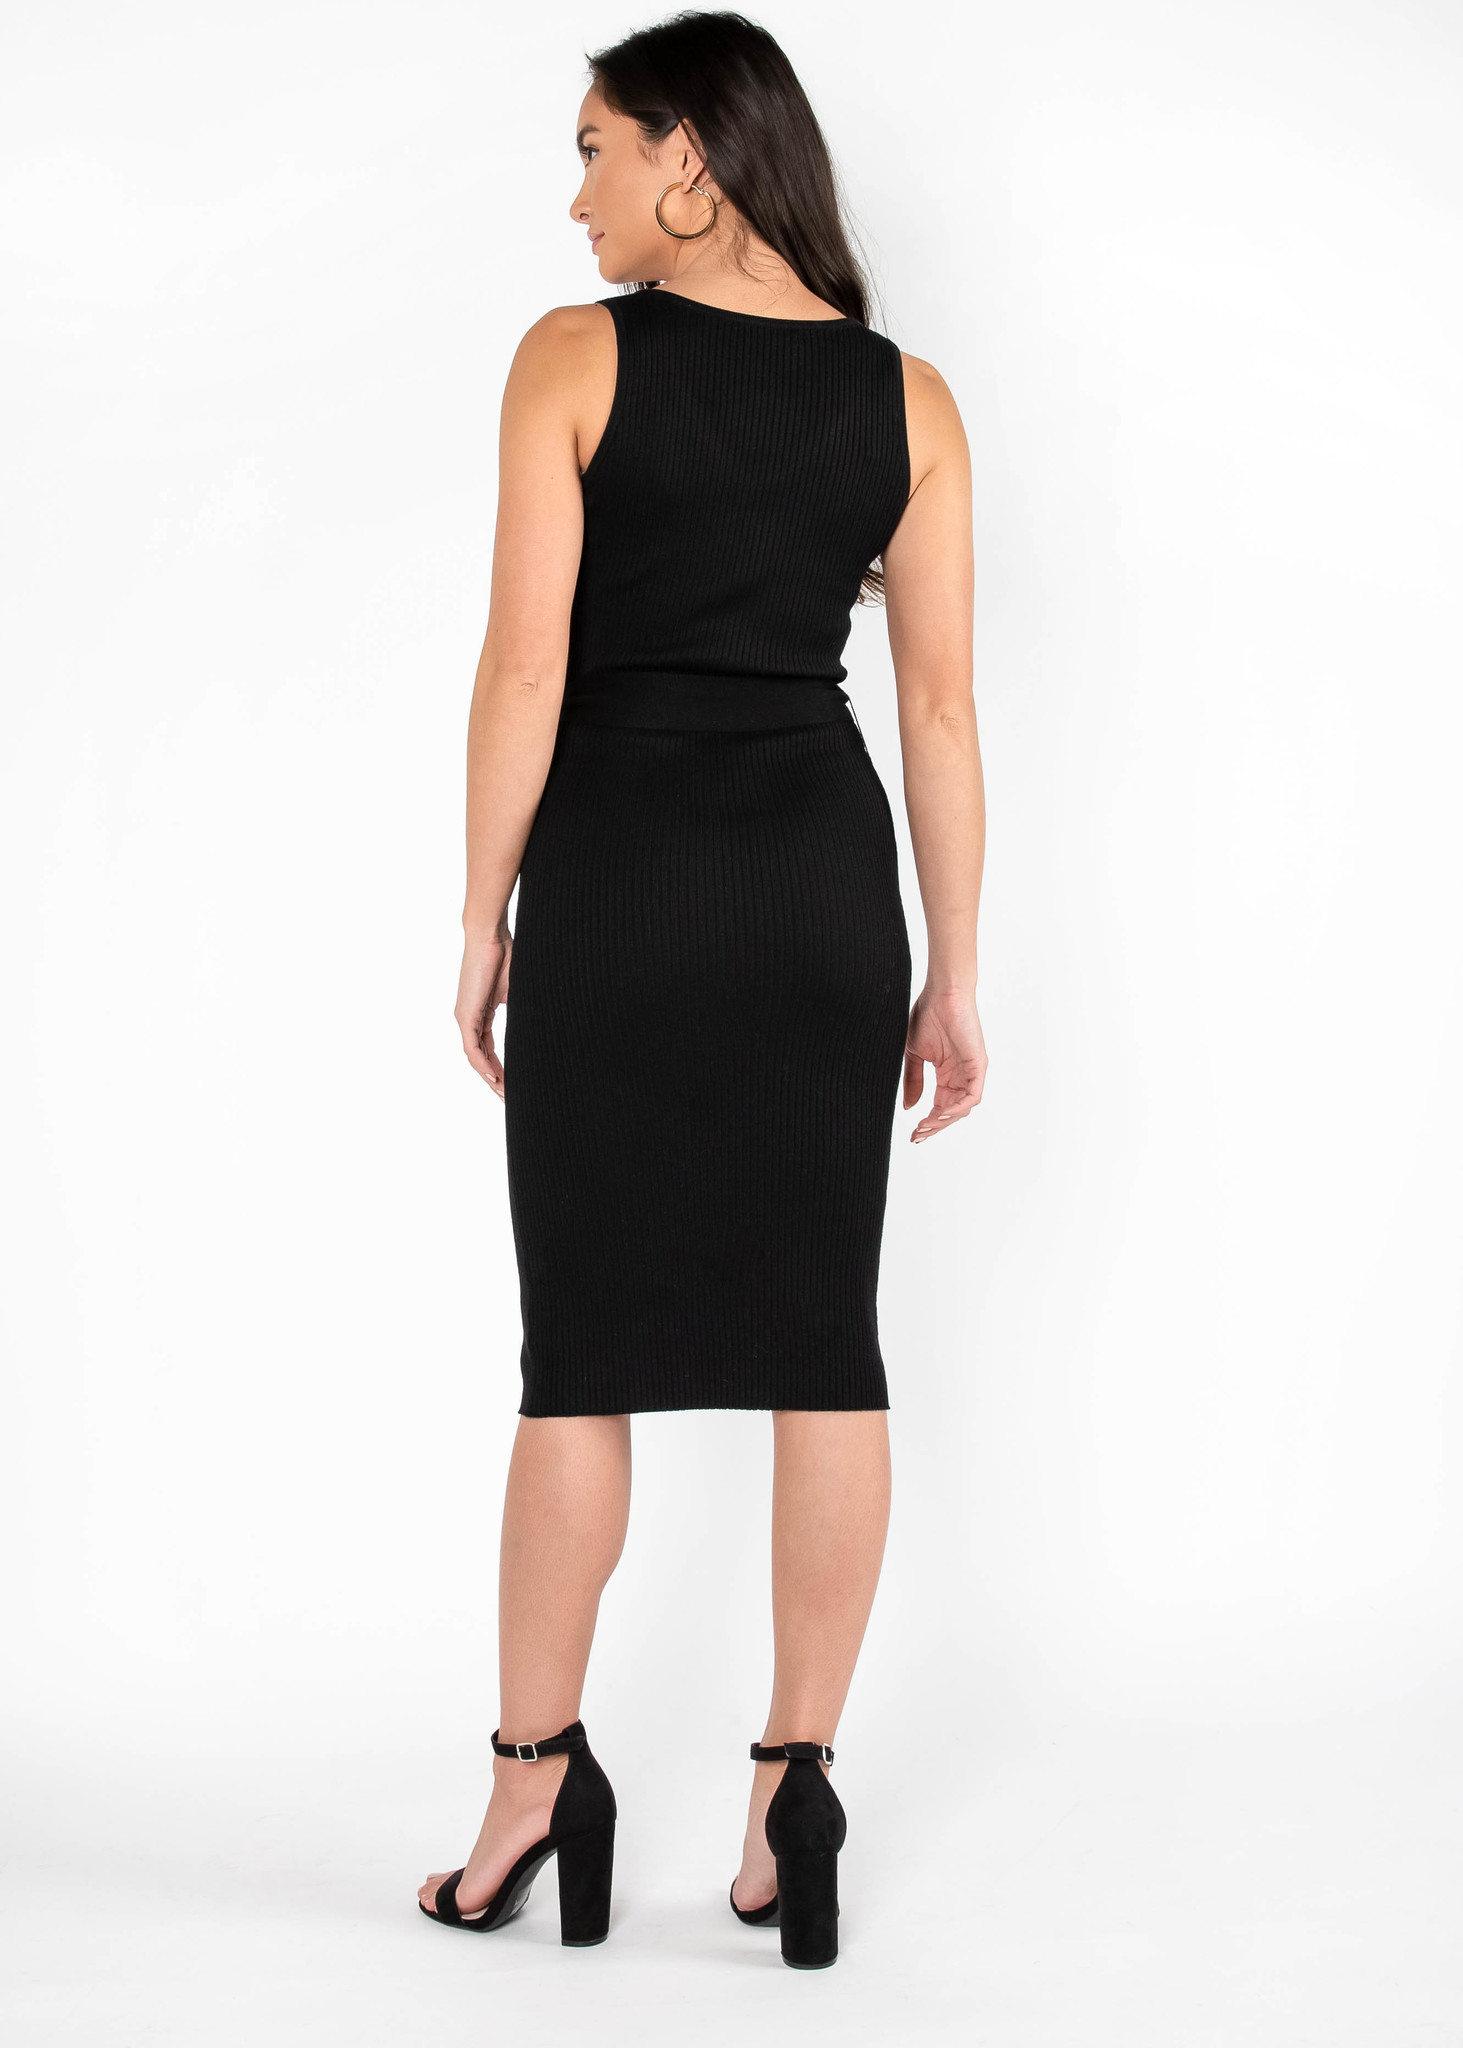 CITY CHIC MIDI DRESS - BLACK